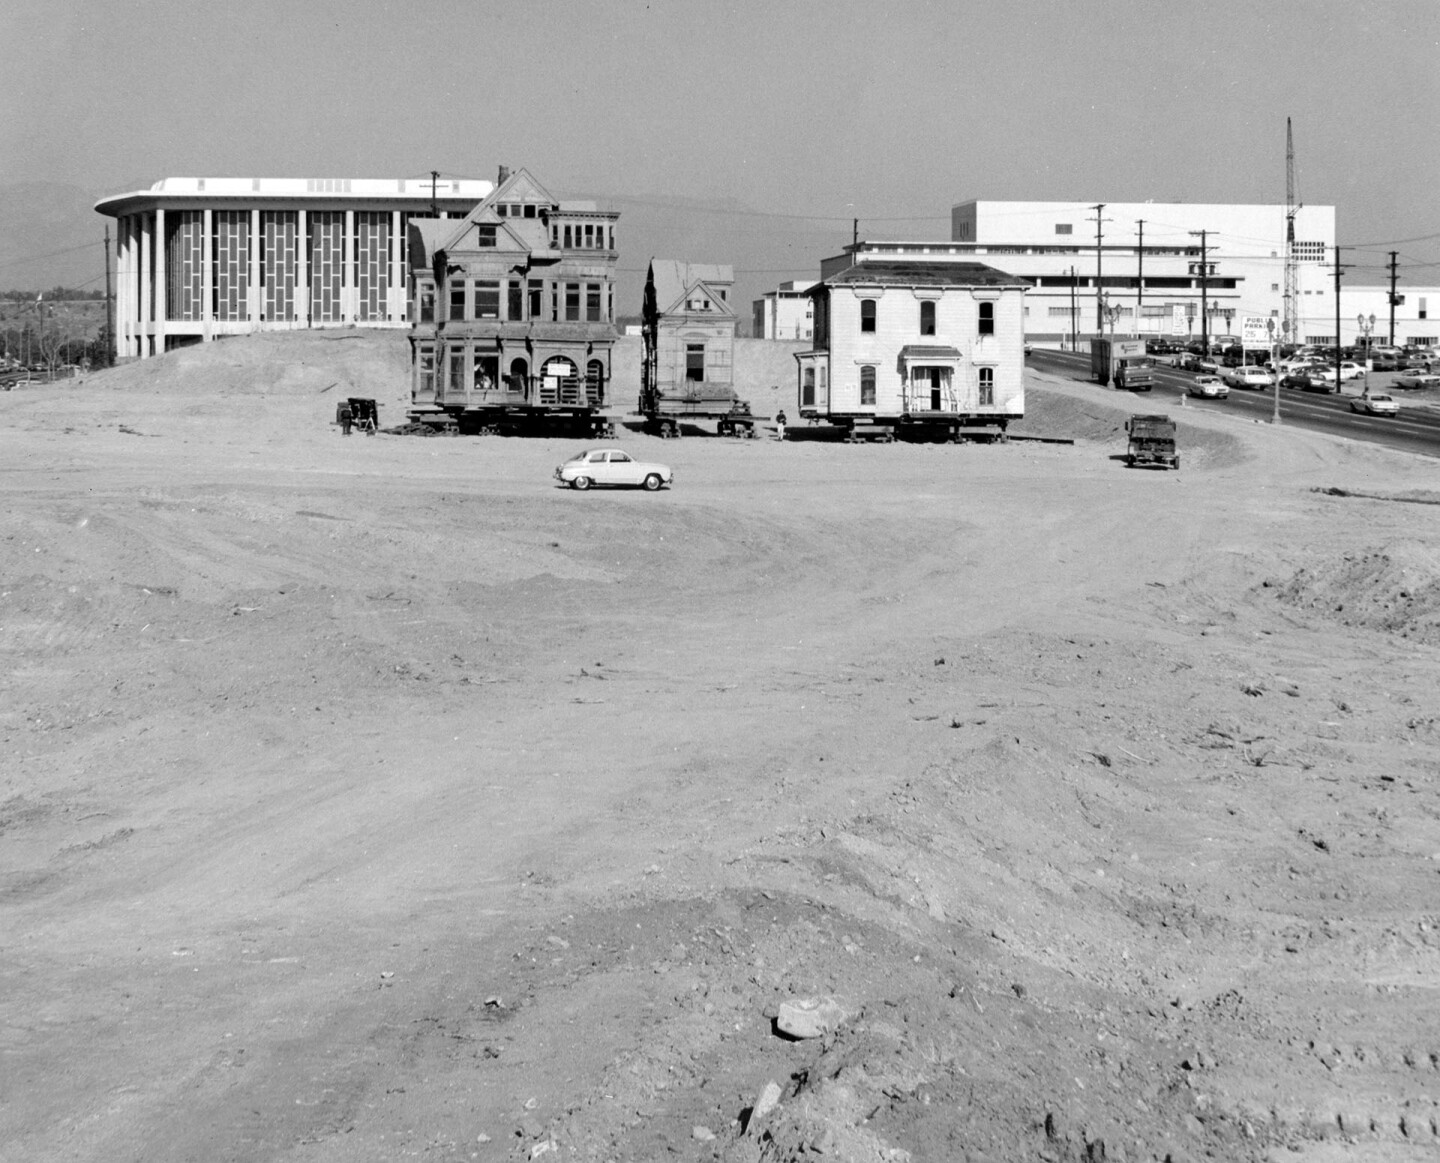 Two remnants of Bunker Hill, their surroundings completly transformed by regrading, prepare for relocation. Courtesy of the Security Pacific National Bank Collection - Los Angeles Public Library.